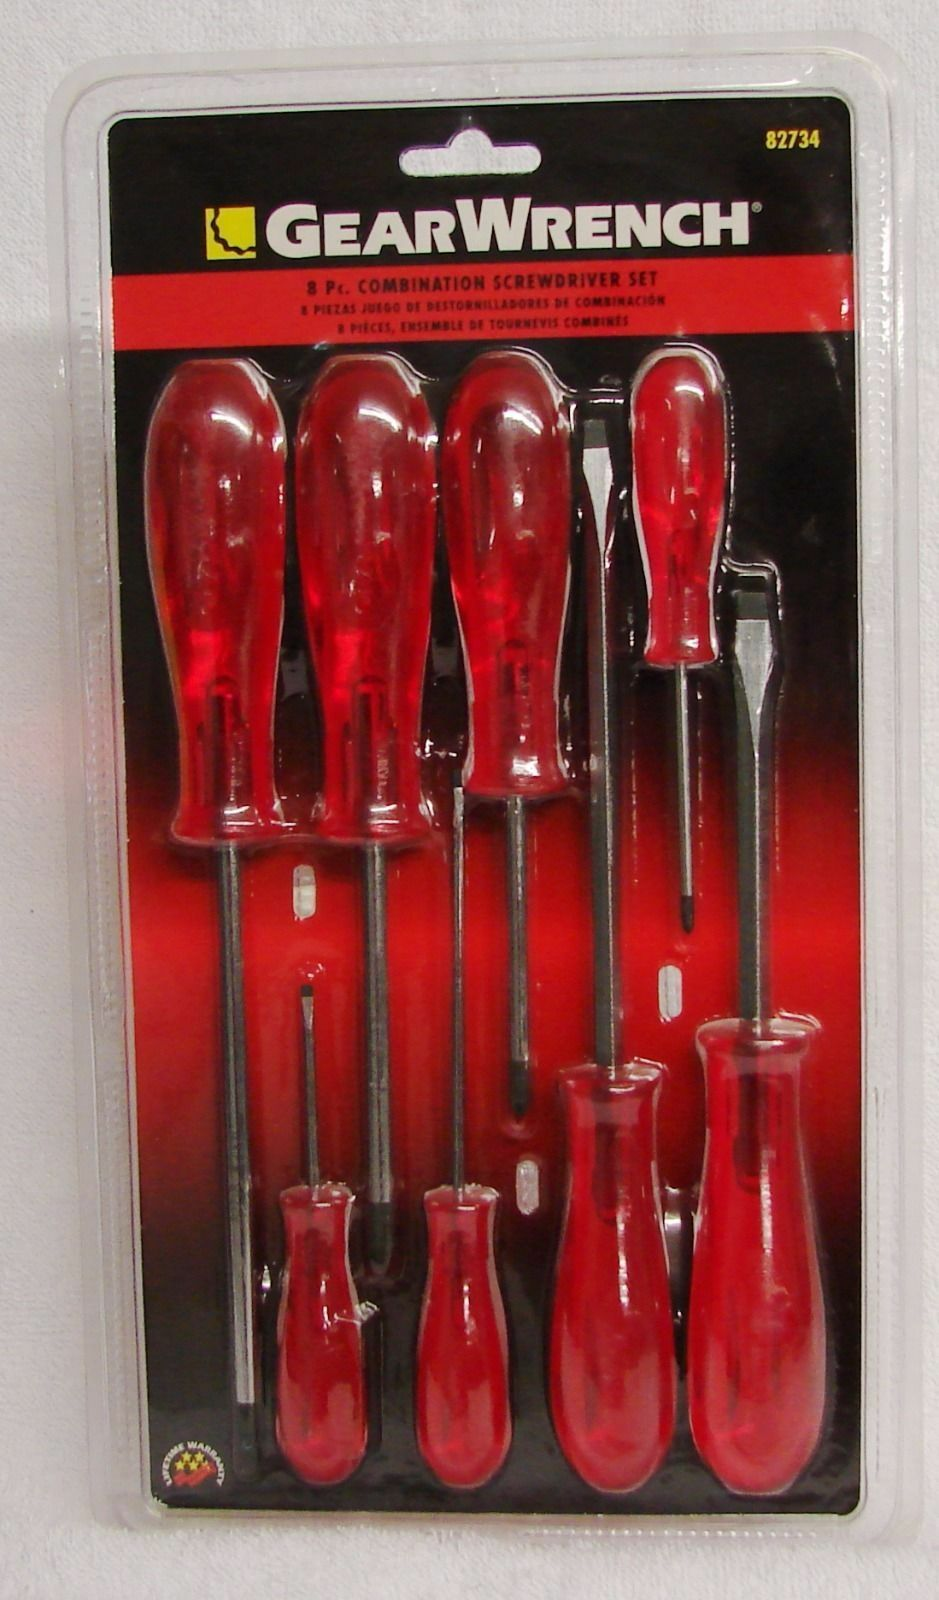 Gearwrench (8) piece Combination Screwdriver Set